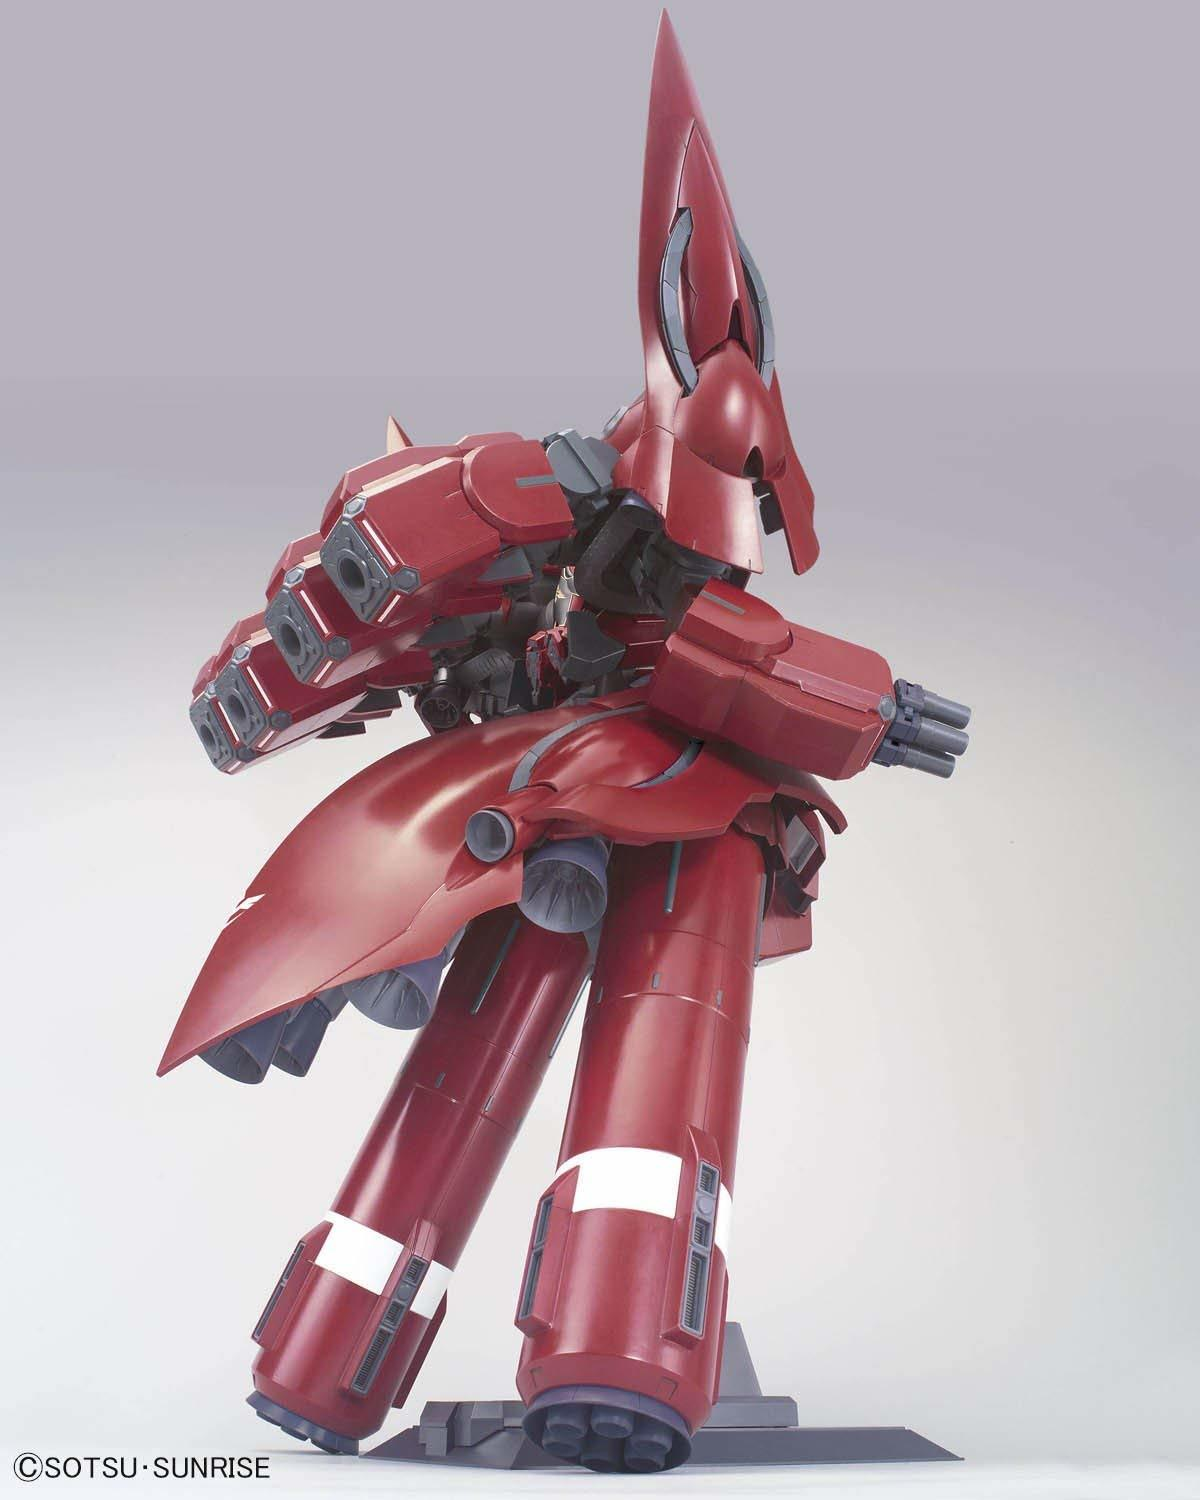 Hguc Nz 999 Neo Zeong 1 144 Model Kit At Mighty Ape Australia Mouse Pad Efreet Image